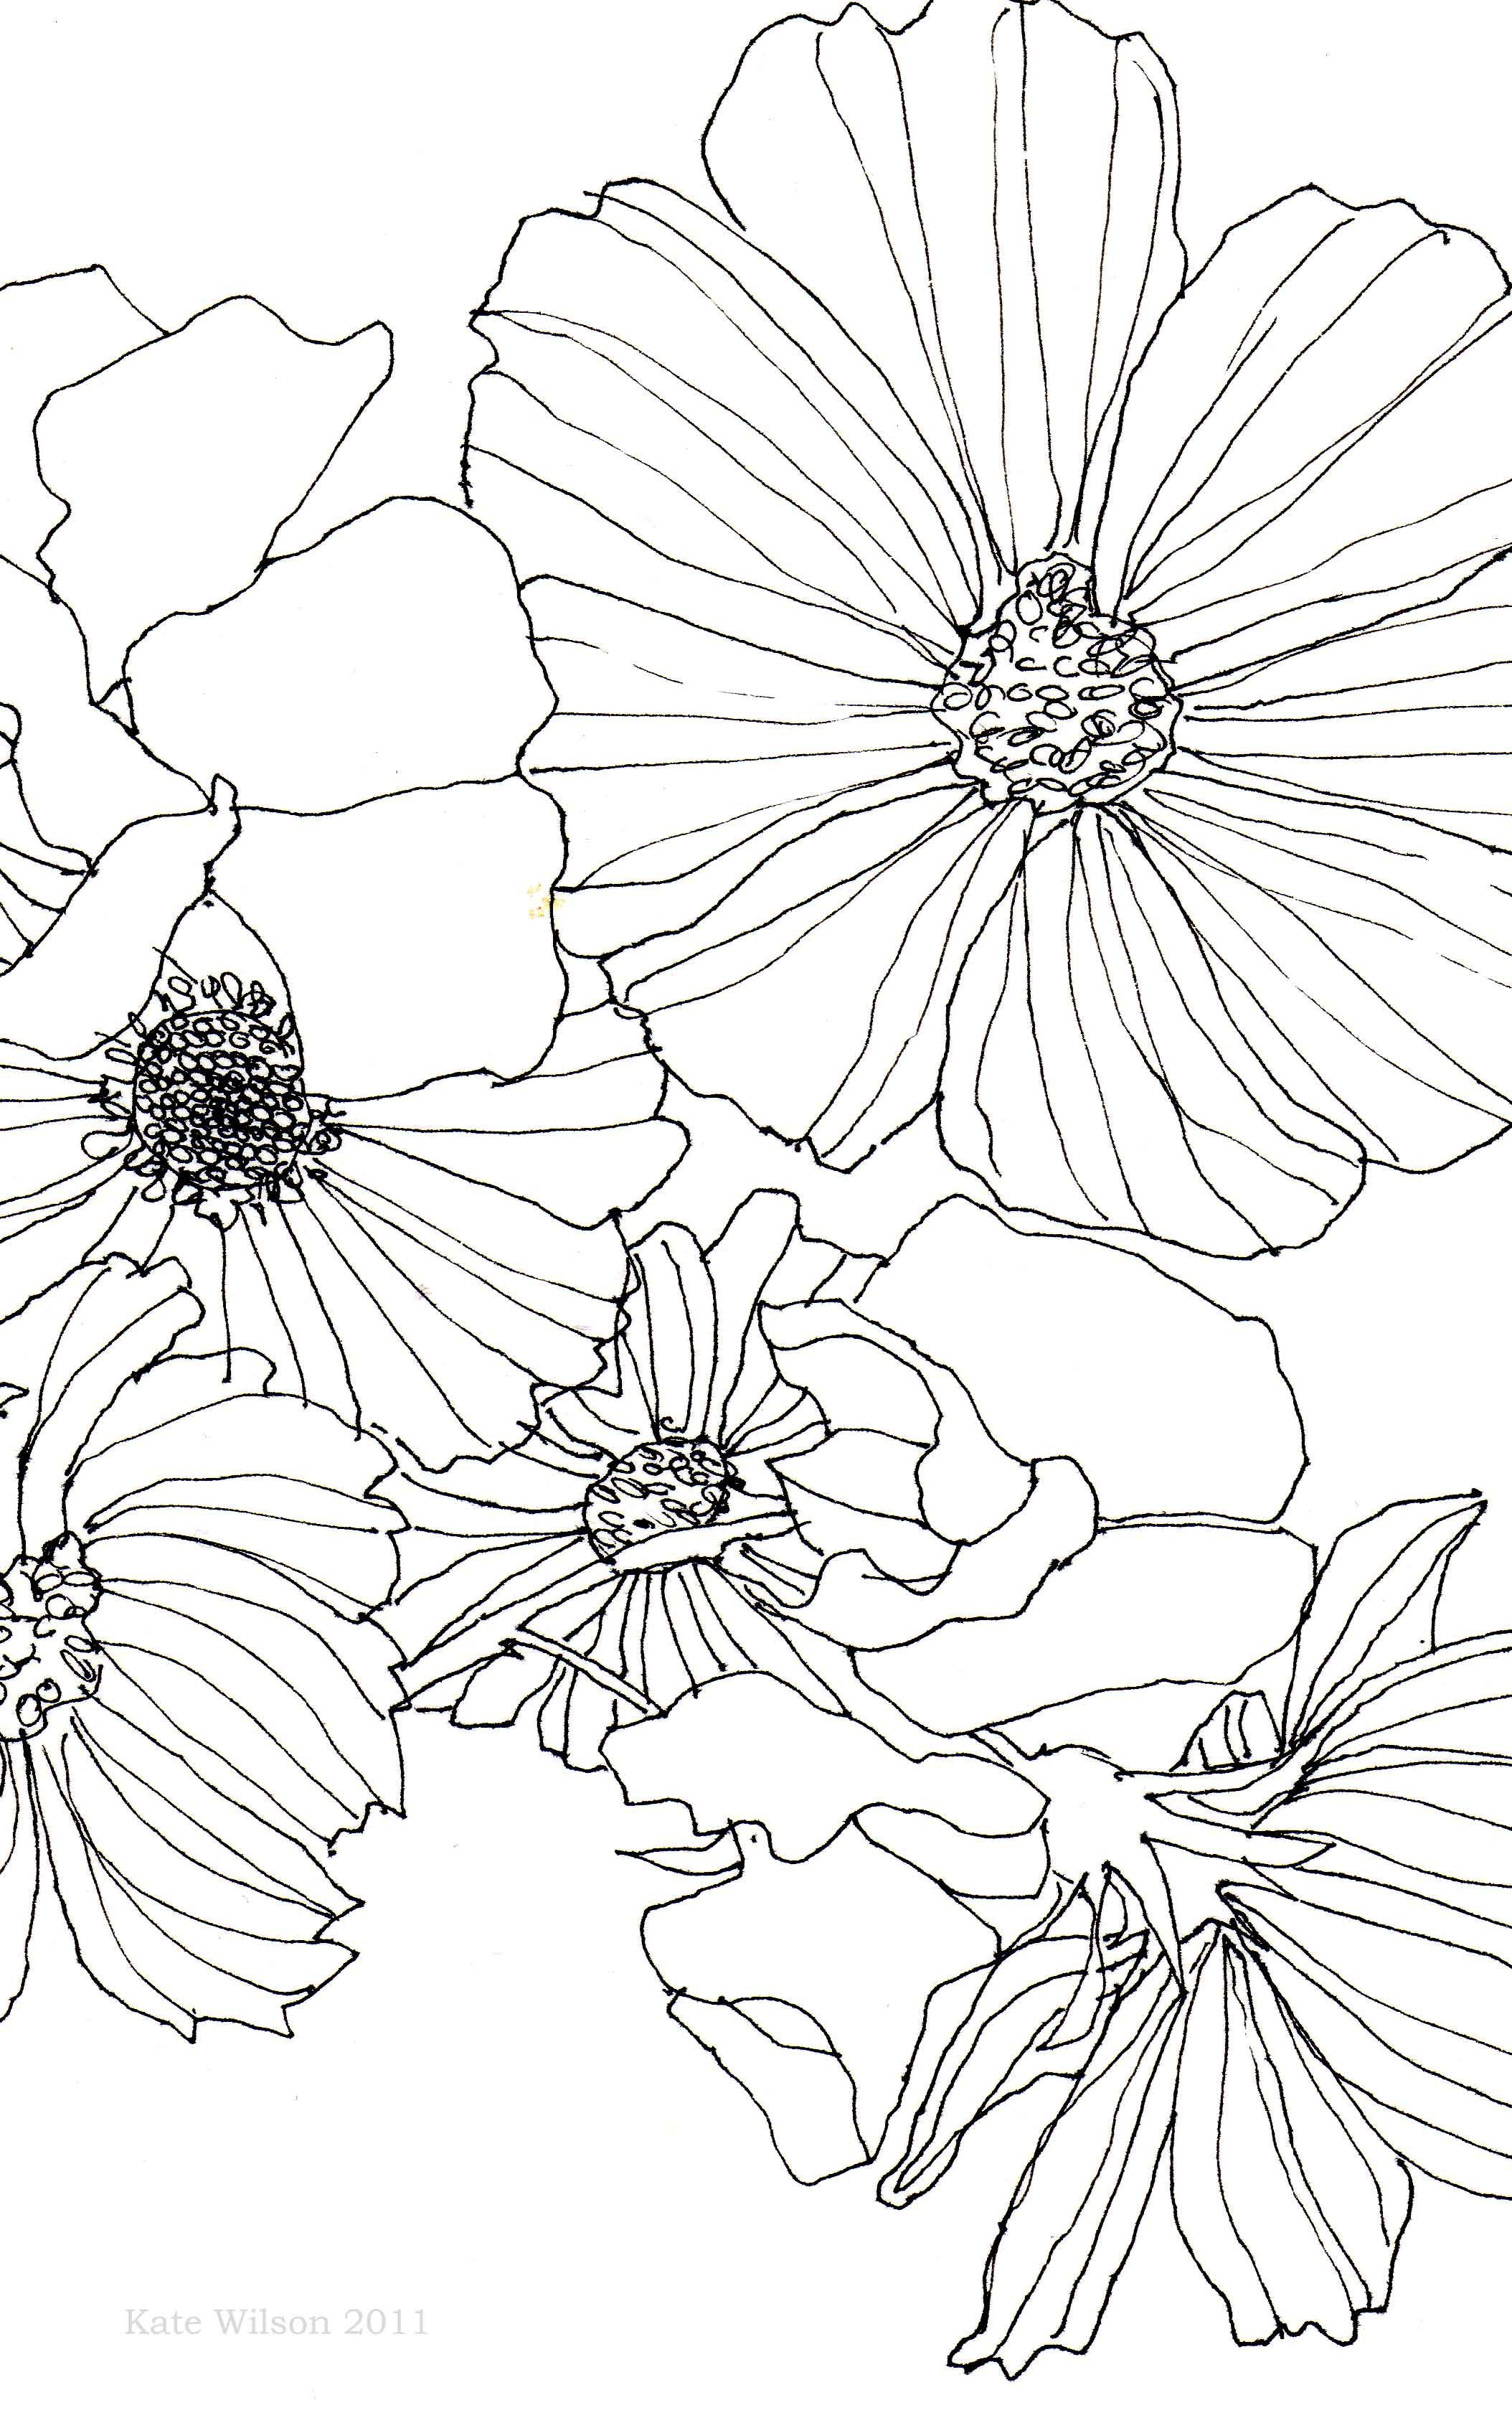 Drawing Software Smooth Lines : Cosmos and sweet pea design ideas pinterest rotring